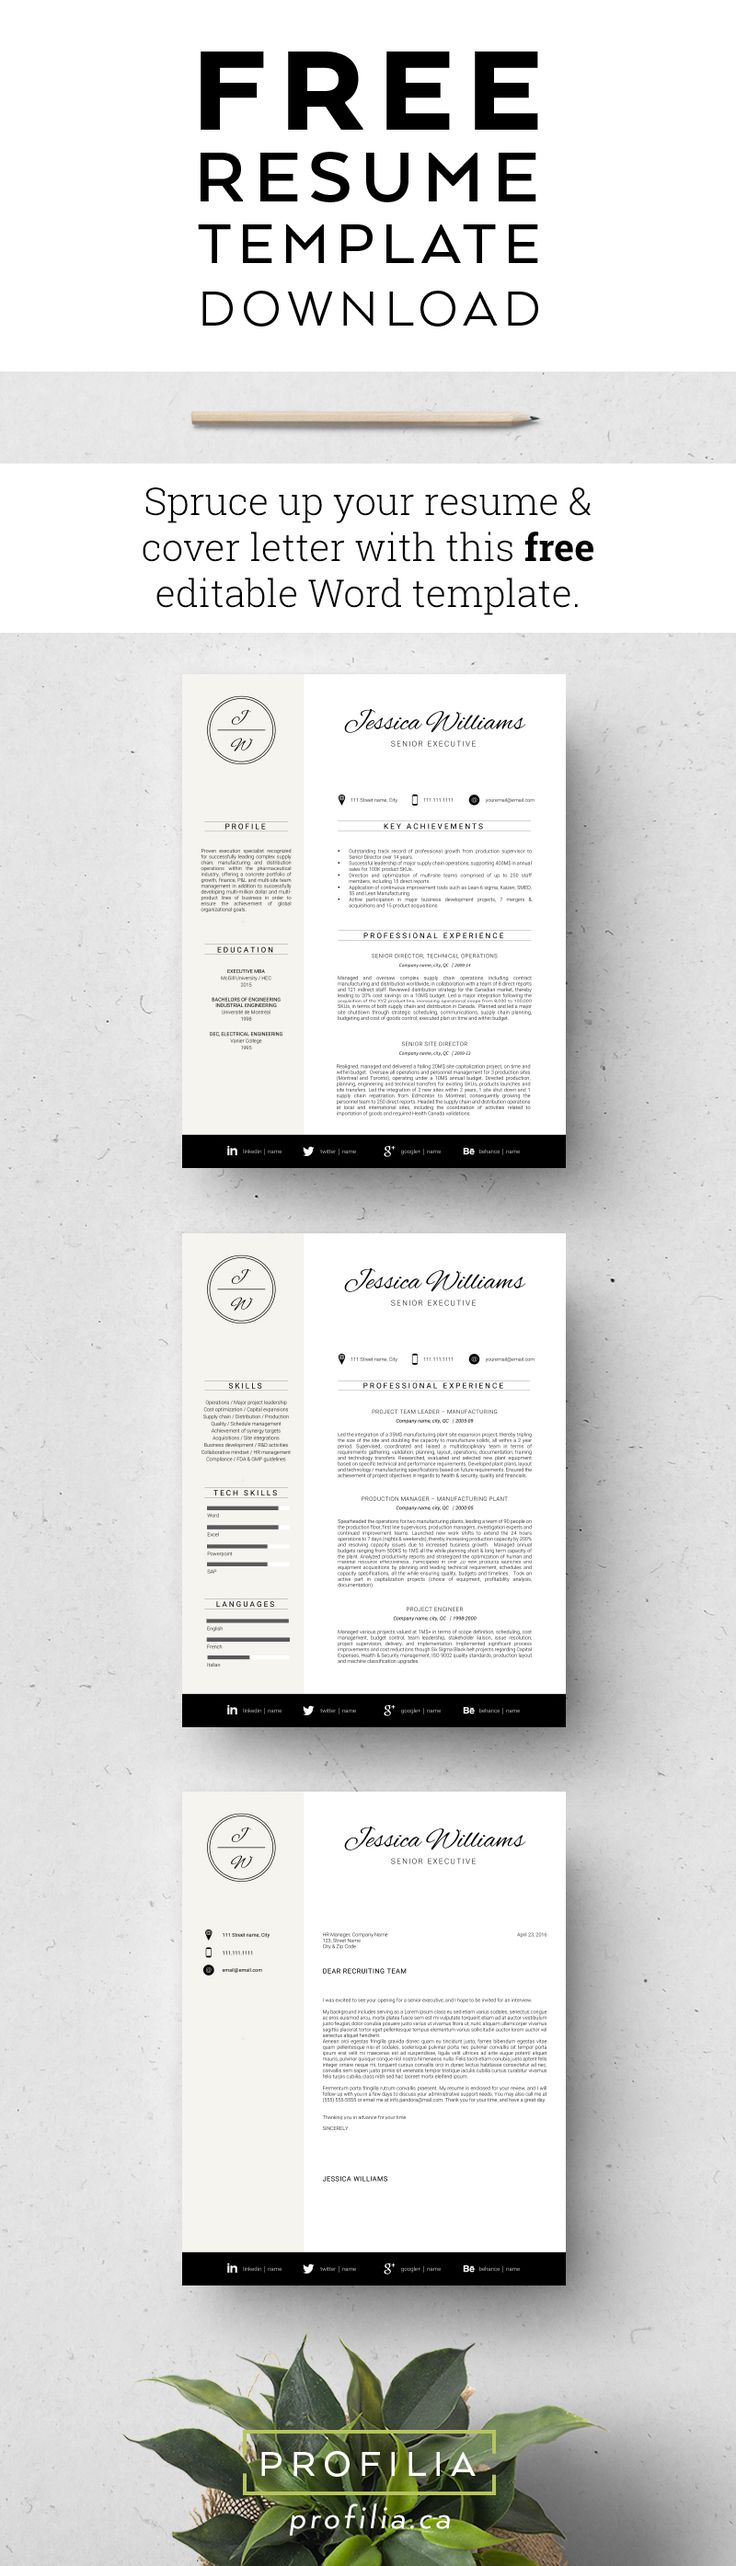 free resume template refresh your job search with this free resume cover - Resume Template Cover Letter